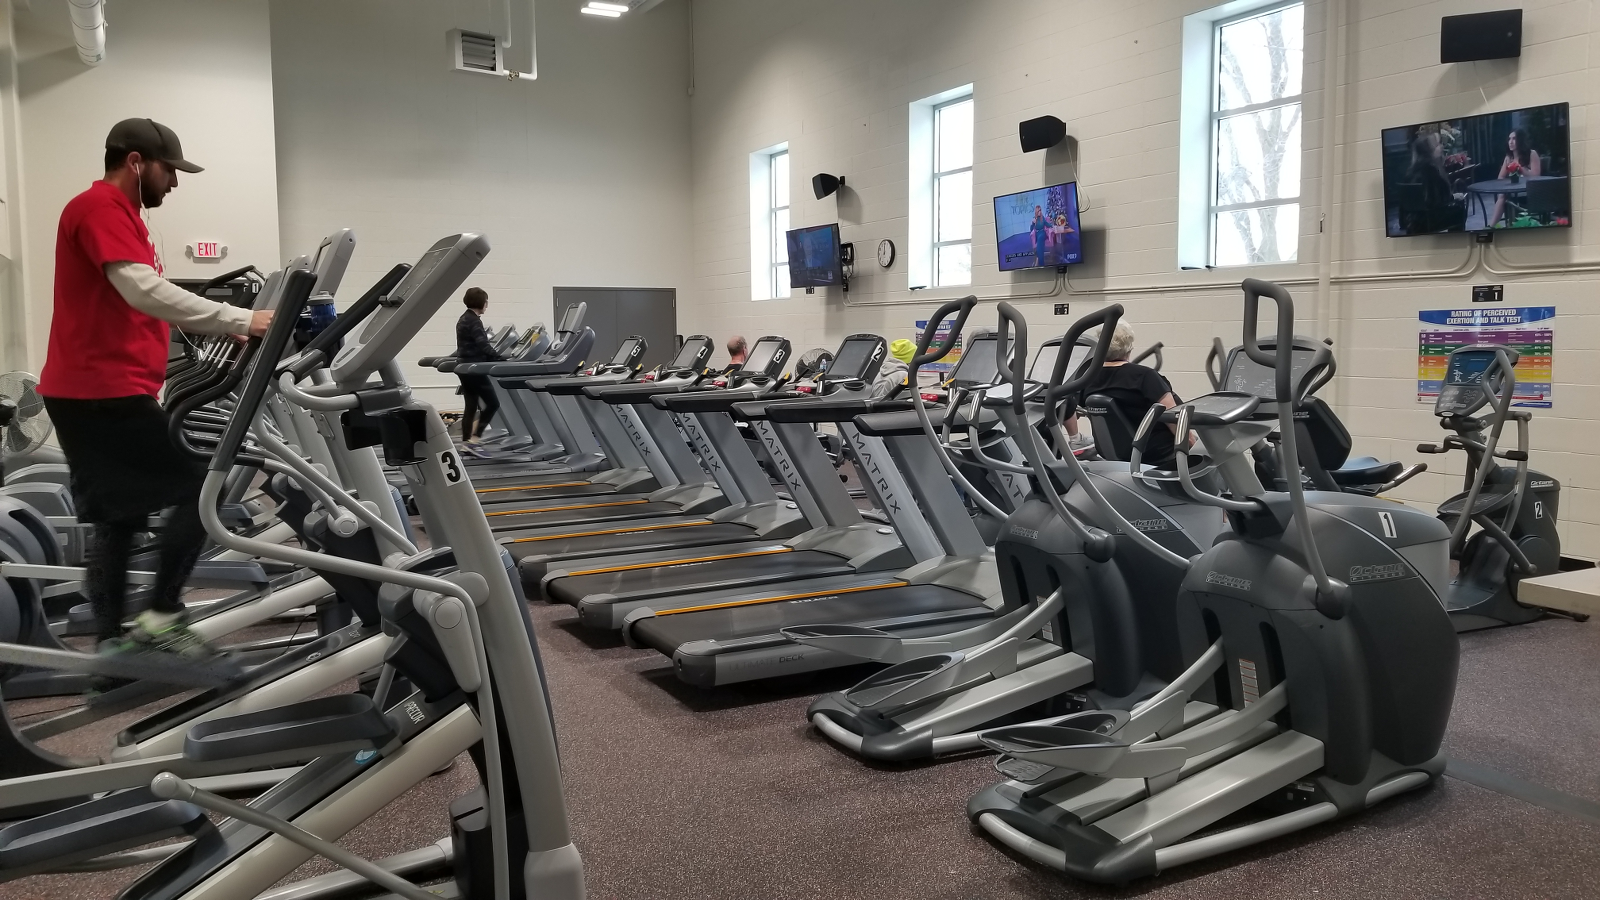 Cardio Room with over 30 machines, including treadmills, ellipticals, bikes and more.